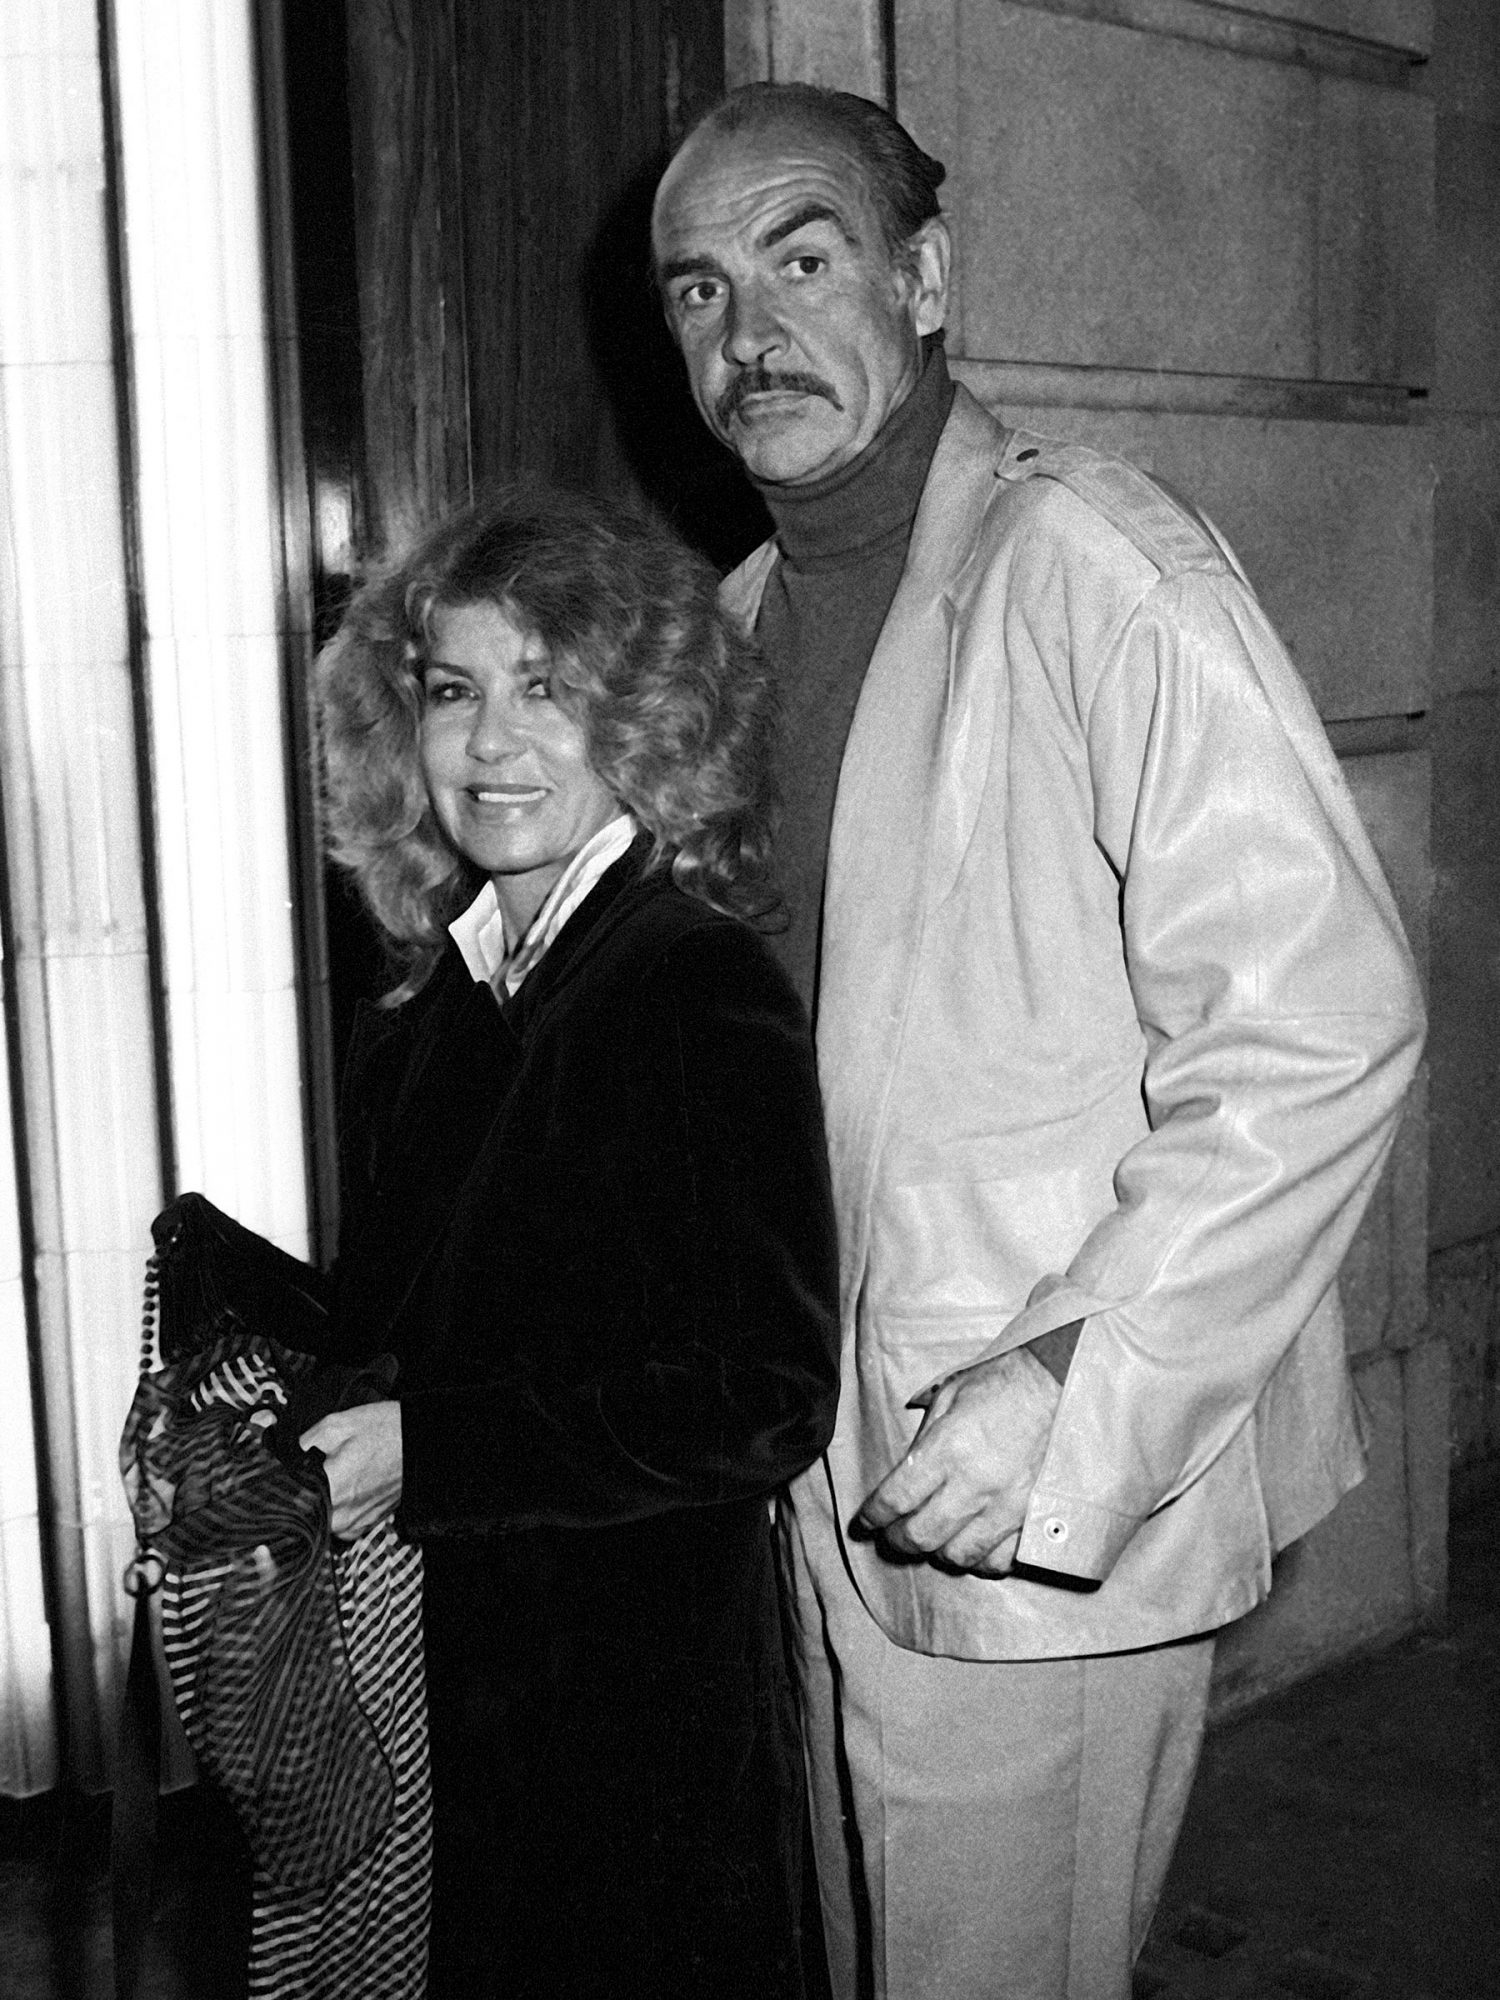 Sean Connery and wife Micheline Sighting at Langan's Brasserie - April 1988